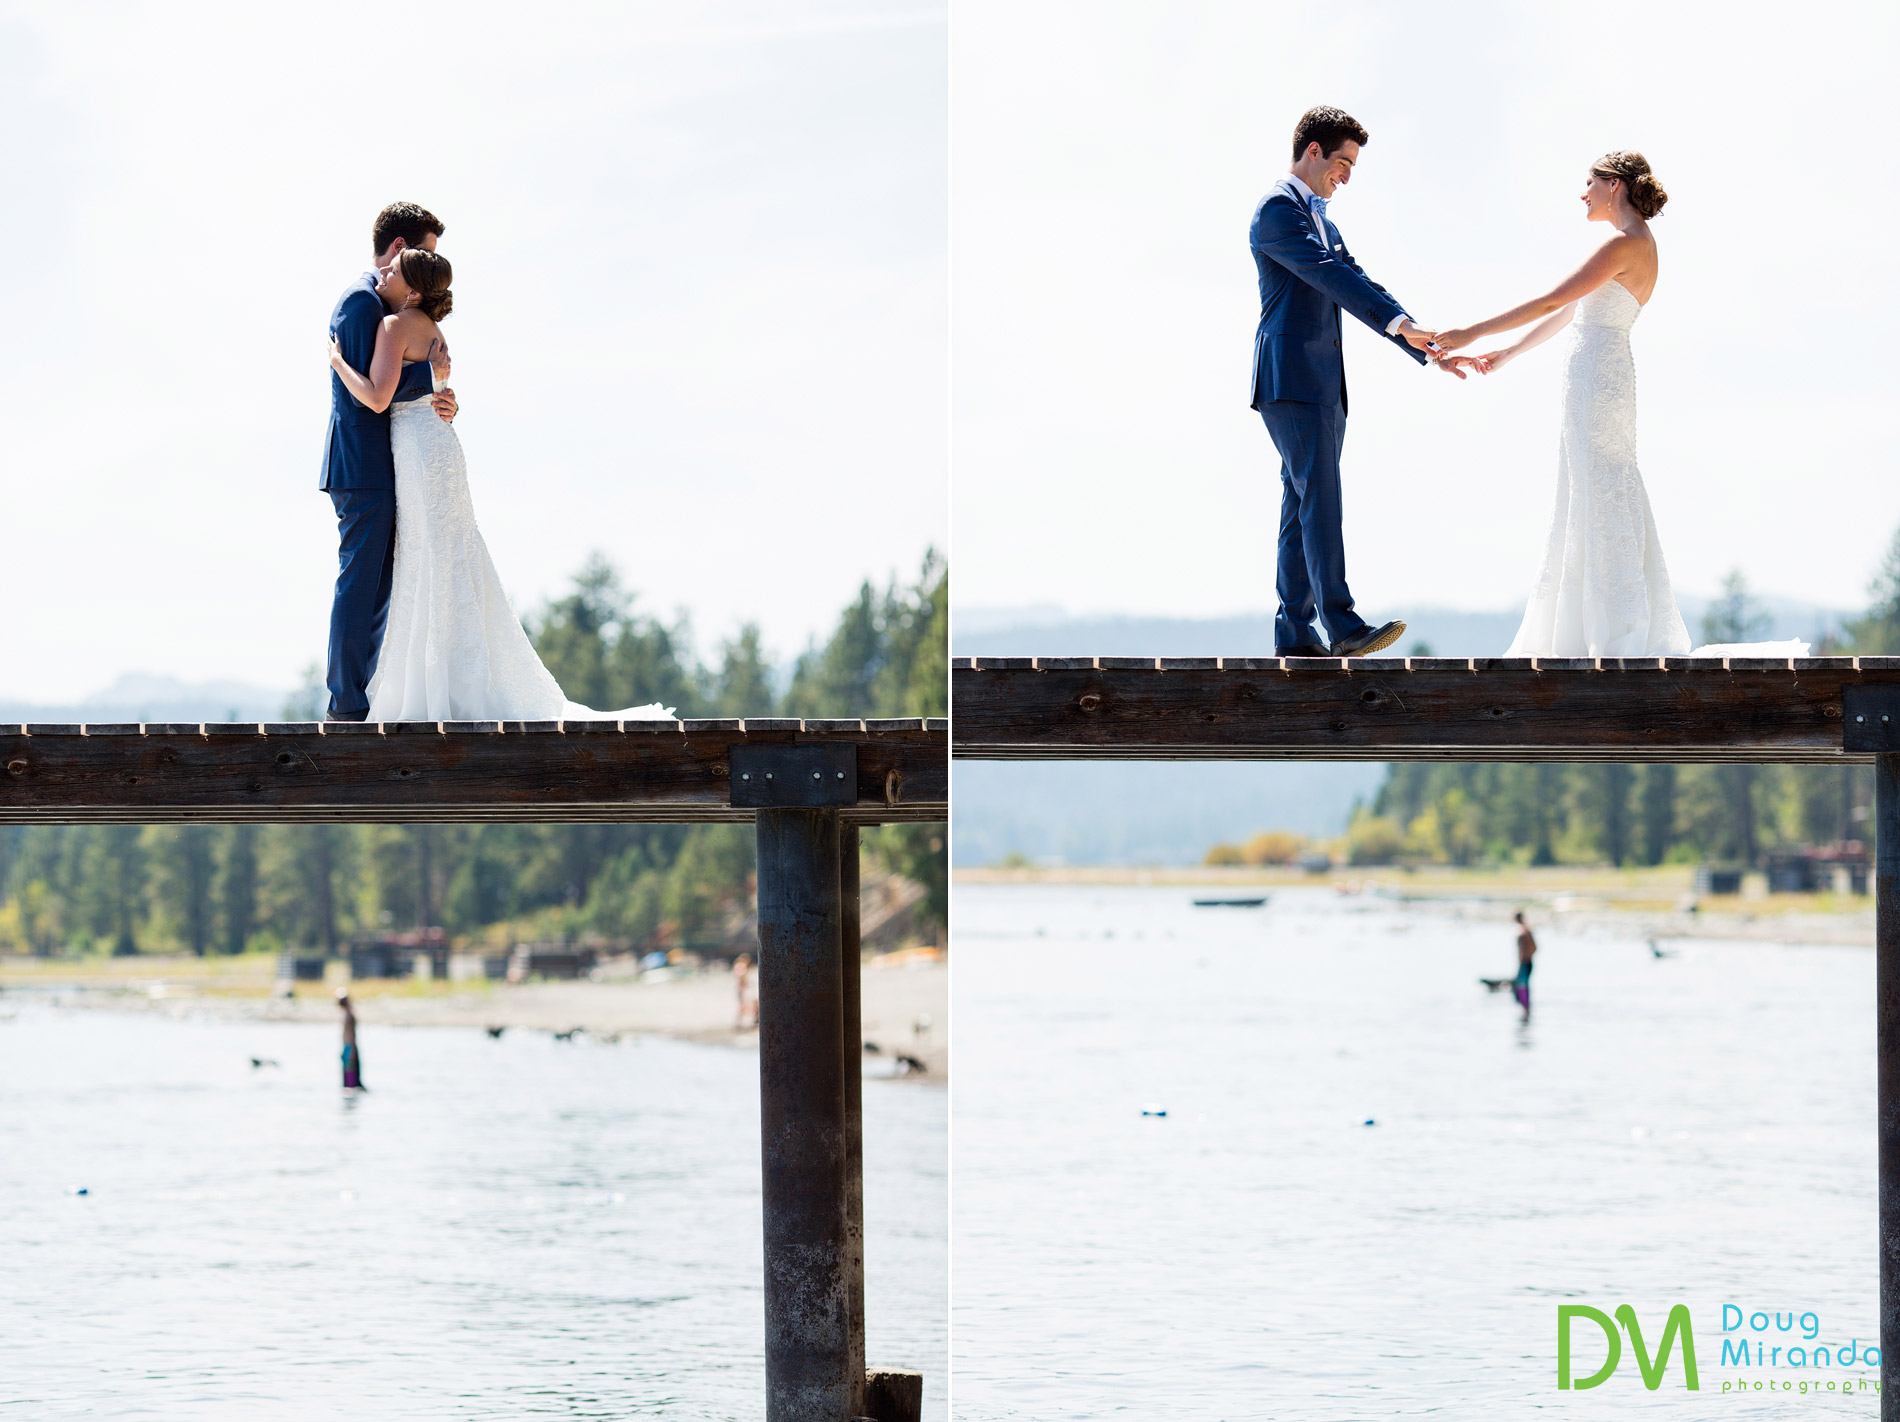 skylandia beach wedding first look